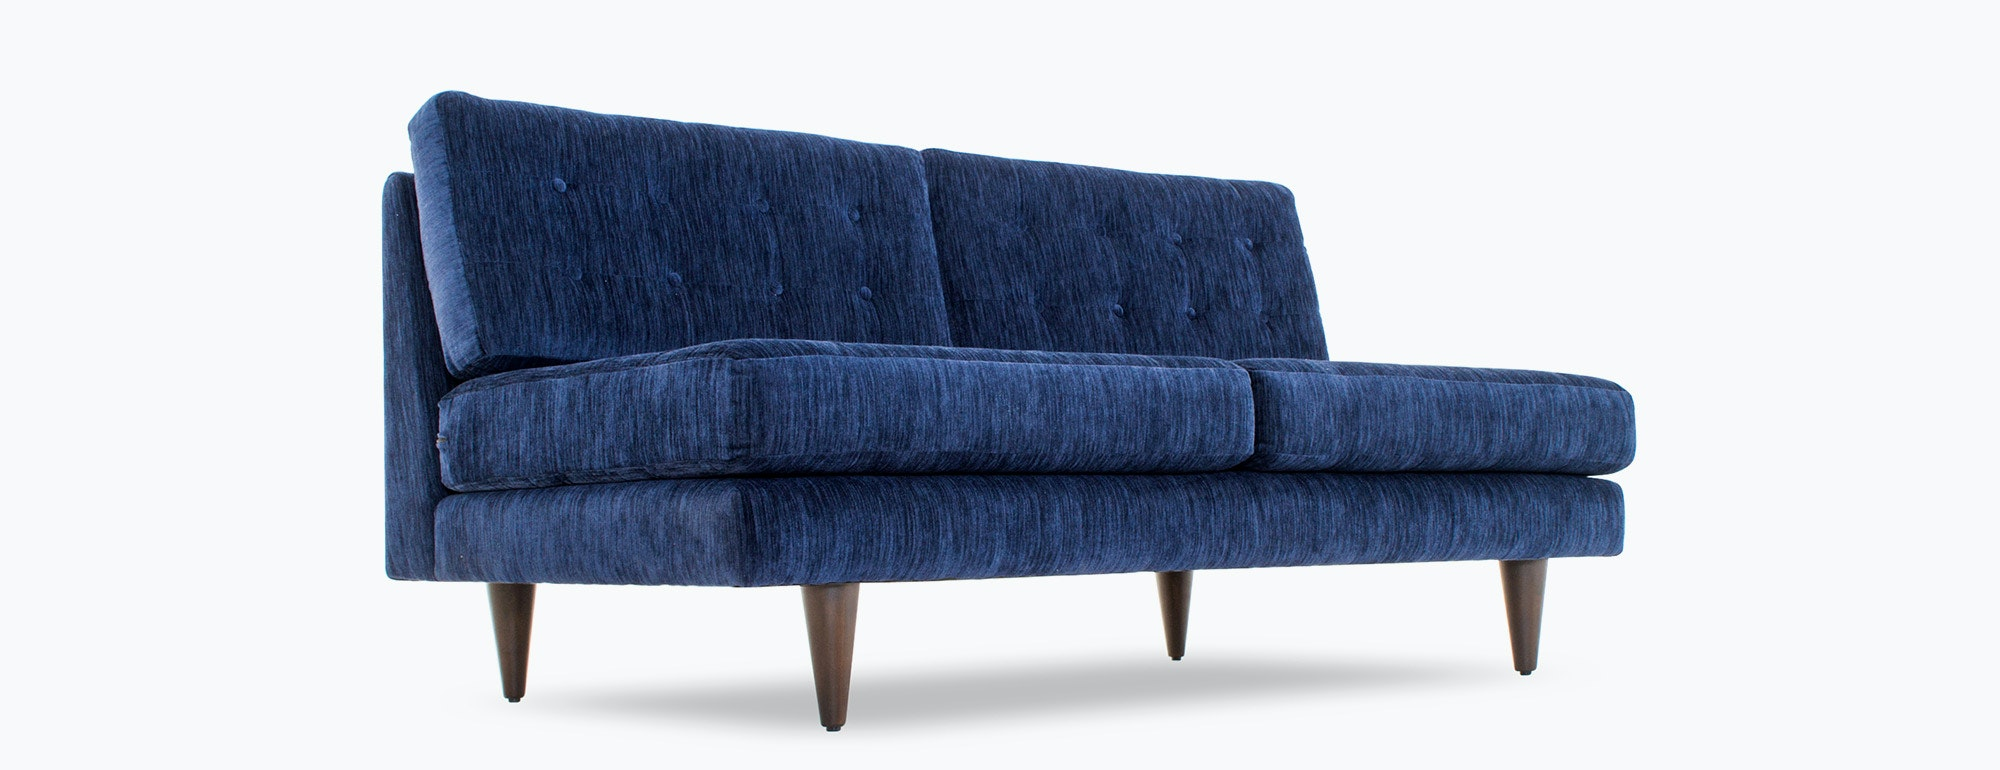 Eliot Armless Loveseat Joybird